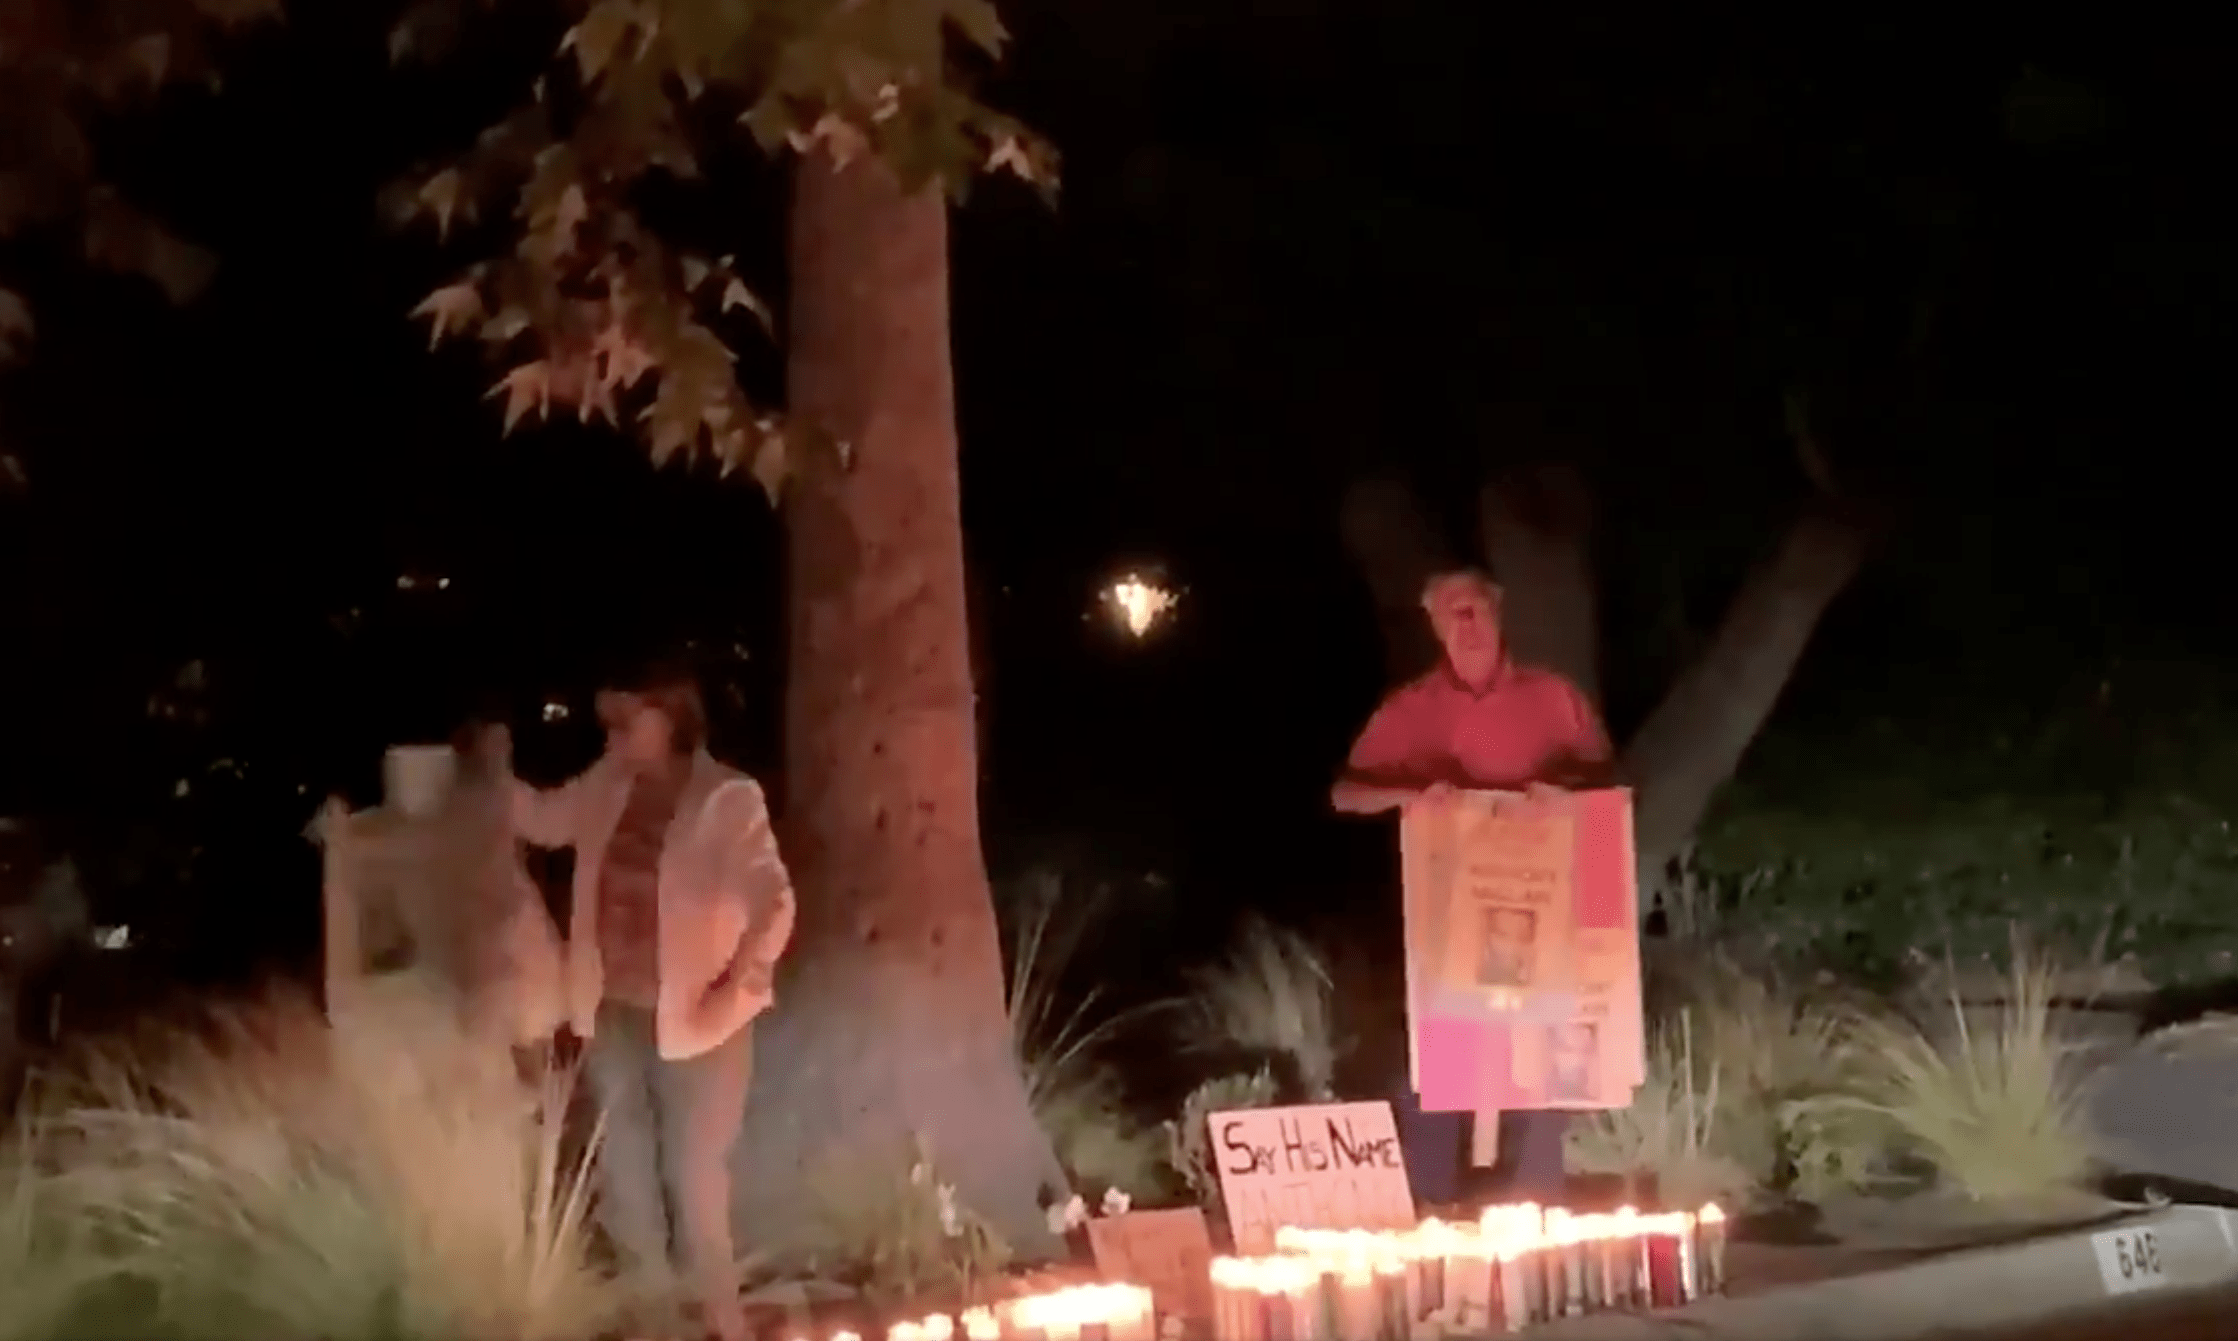 Video posted to Twitter appears to show the mayor of Pasadena removing signs from a vigil for Anthony McClain on Oct. 24, 2020. (Sean Carmitchel)